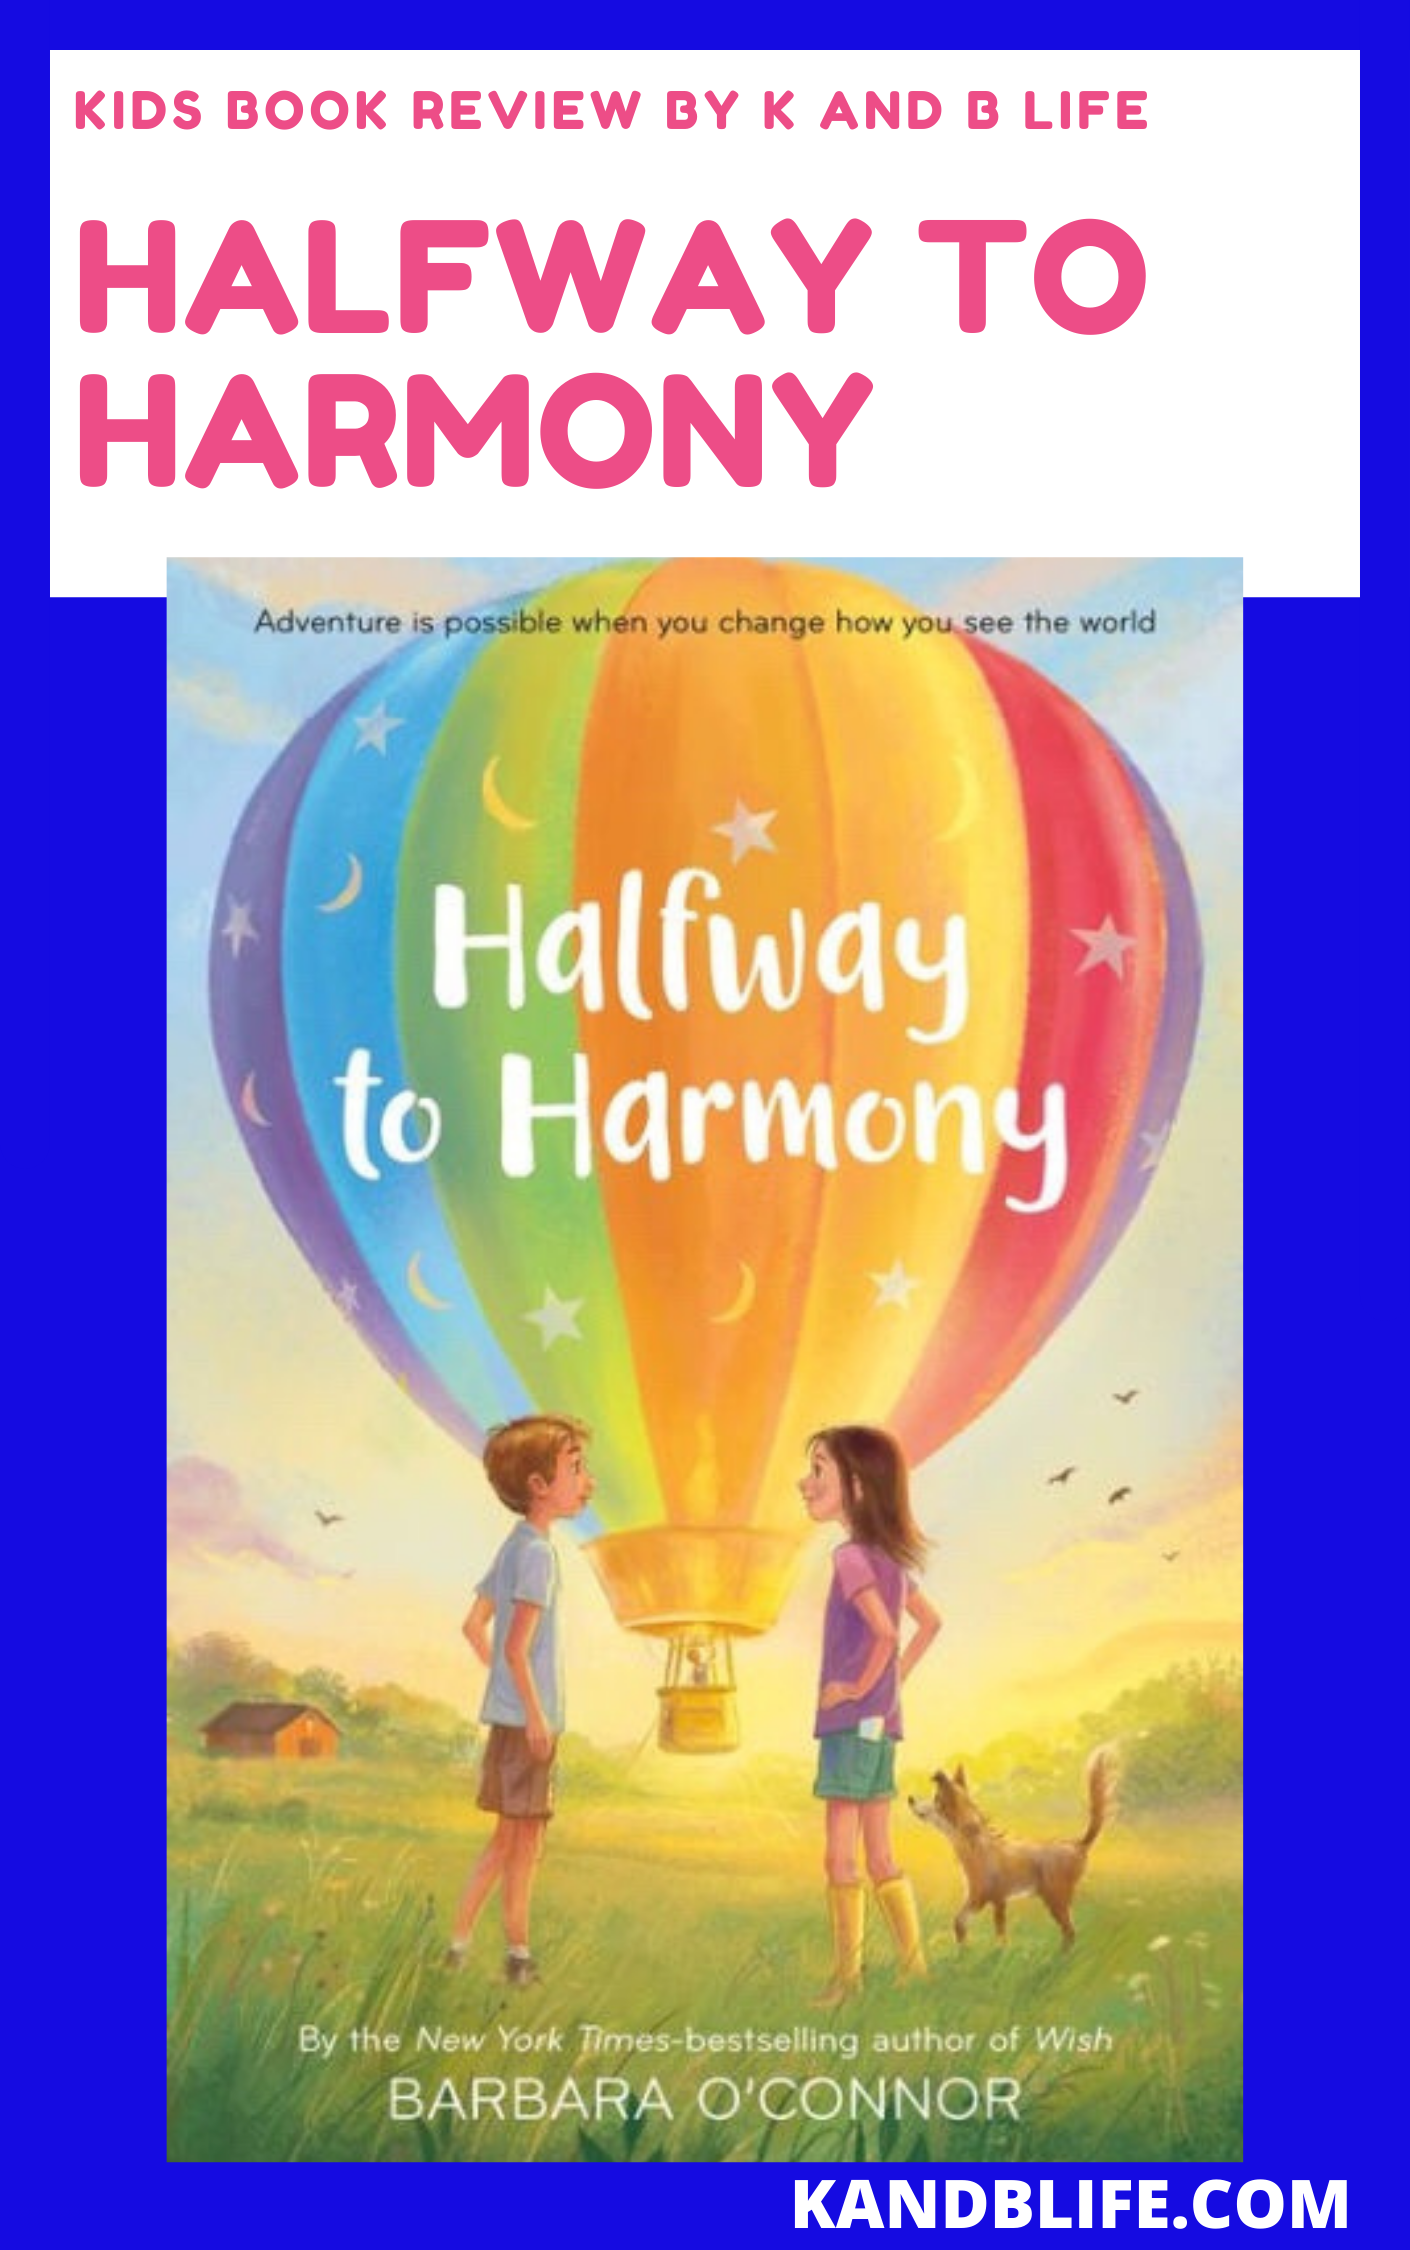 Kids Book Review coverer Halfway to Harmony